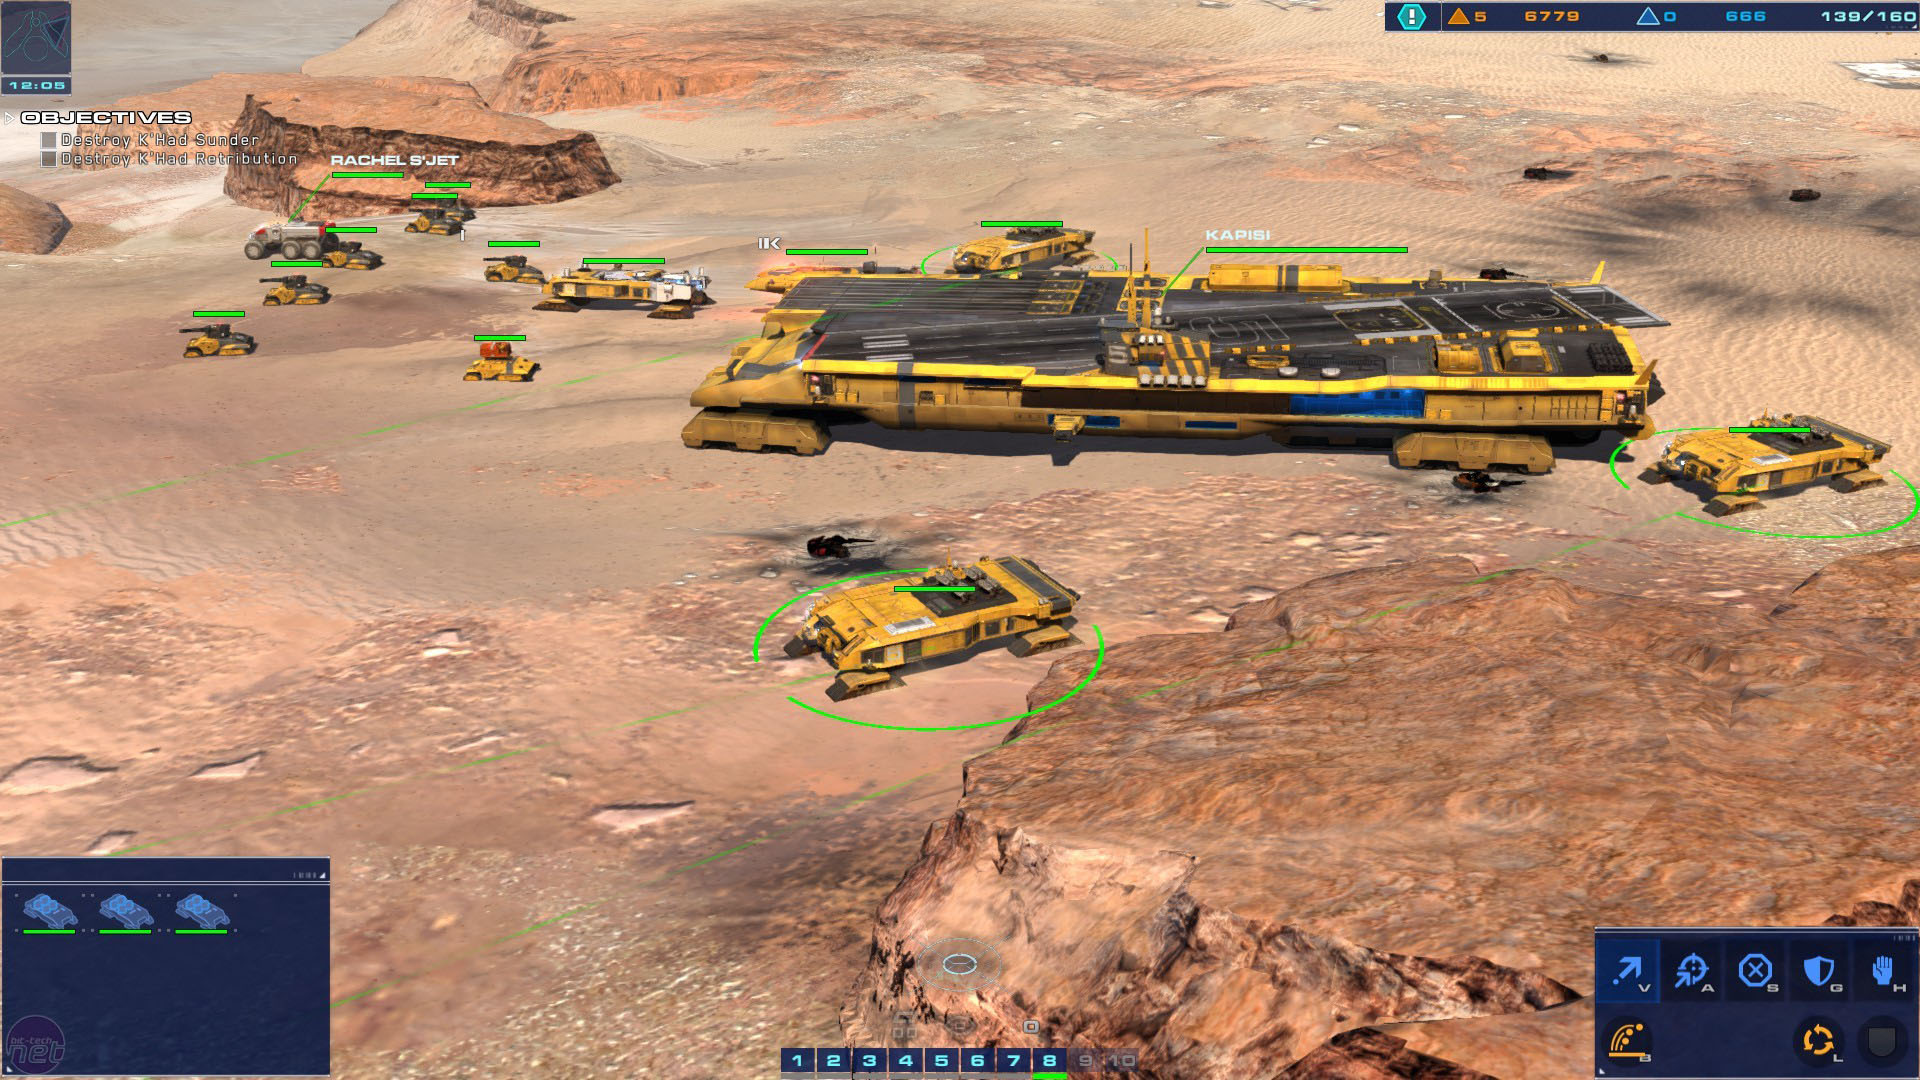 Homeworld Deserts of Kharak - VGProfessiona Review (2)